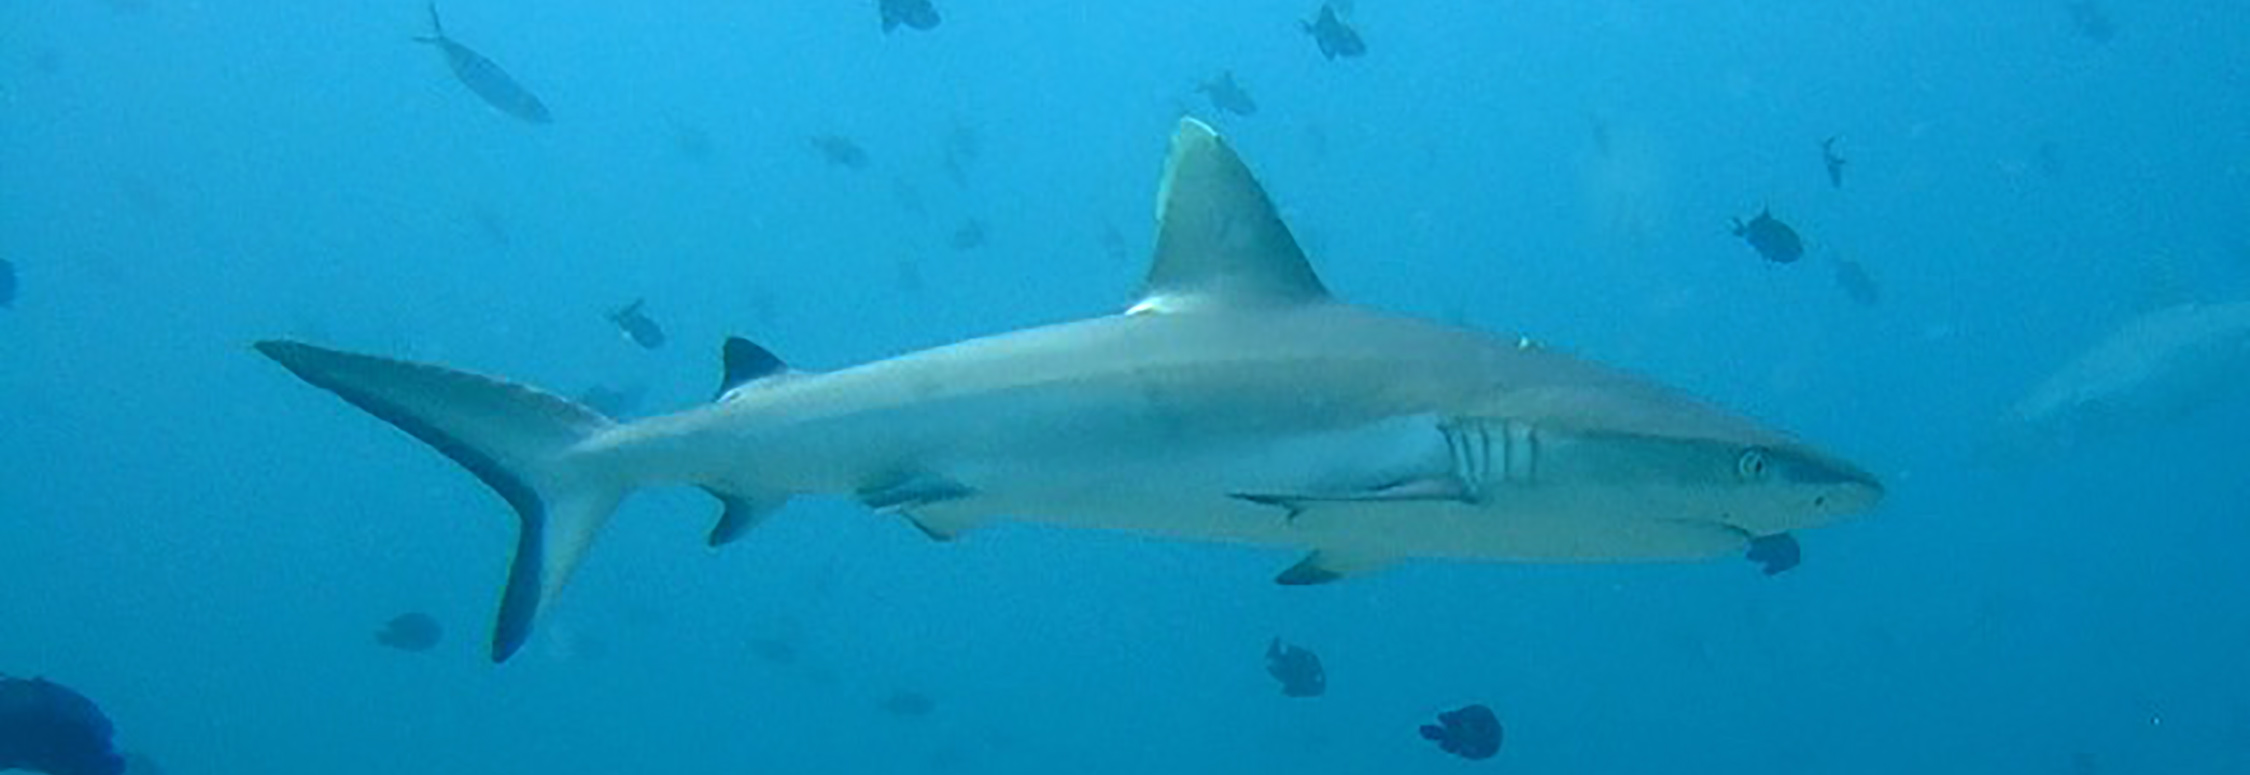 White tip reef shark Maldives  By Johnmartindavies - Own work, CC BY-SA 3.0, https://commons.wikimedia.org/w/index.php?curid=31245645